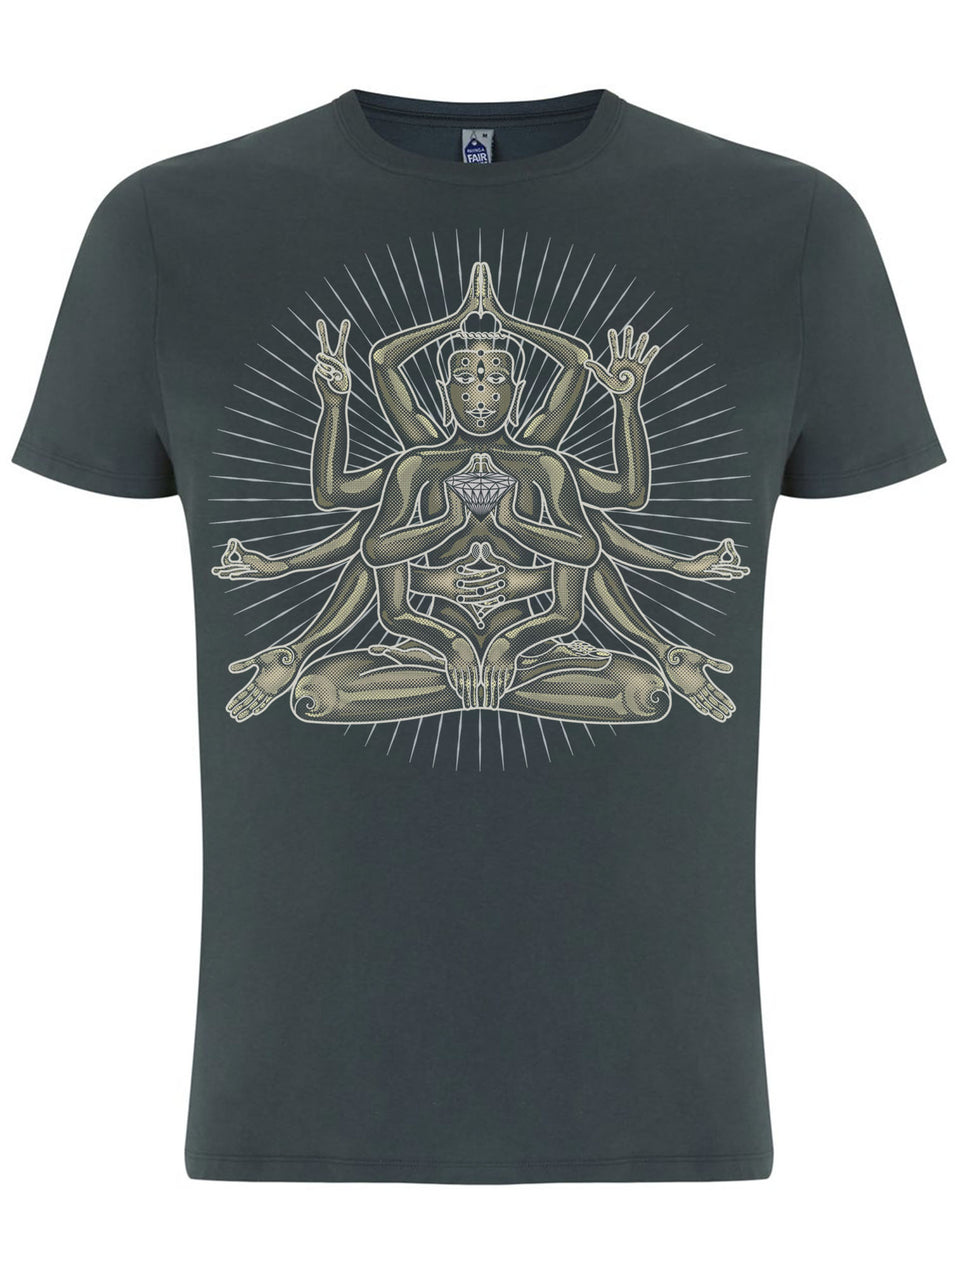 Sheva Made To Order Men T-Shirt - Light Charcoal